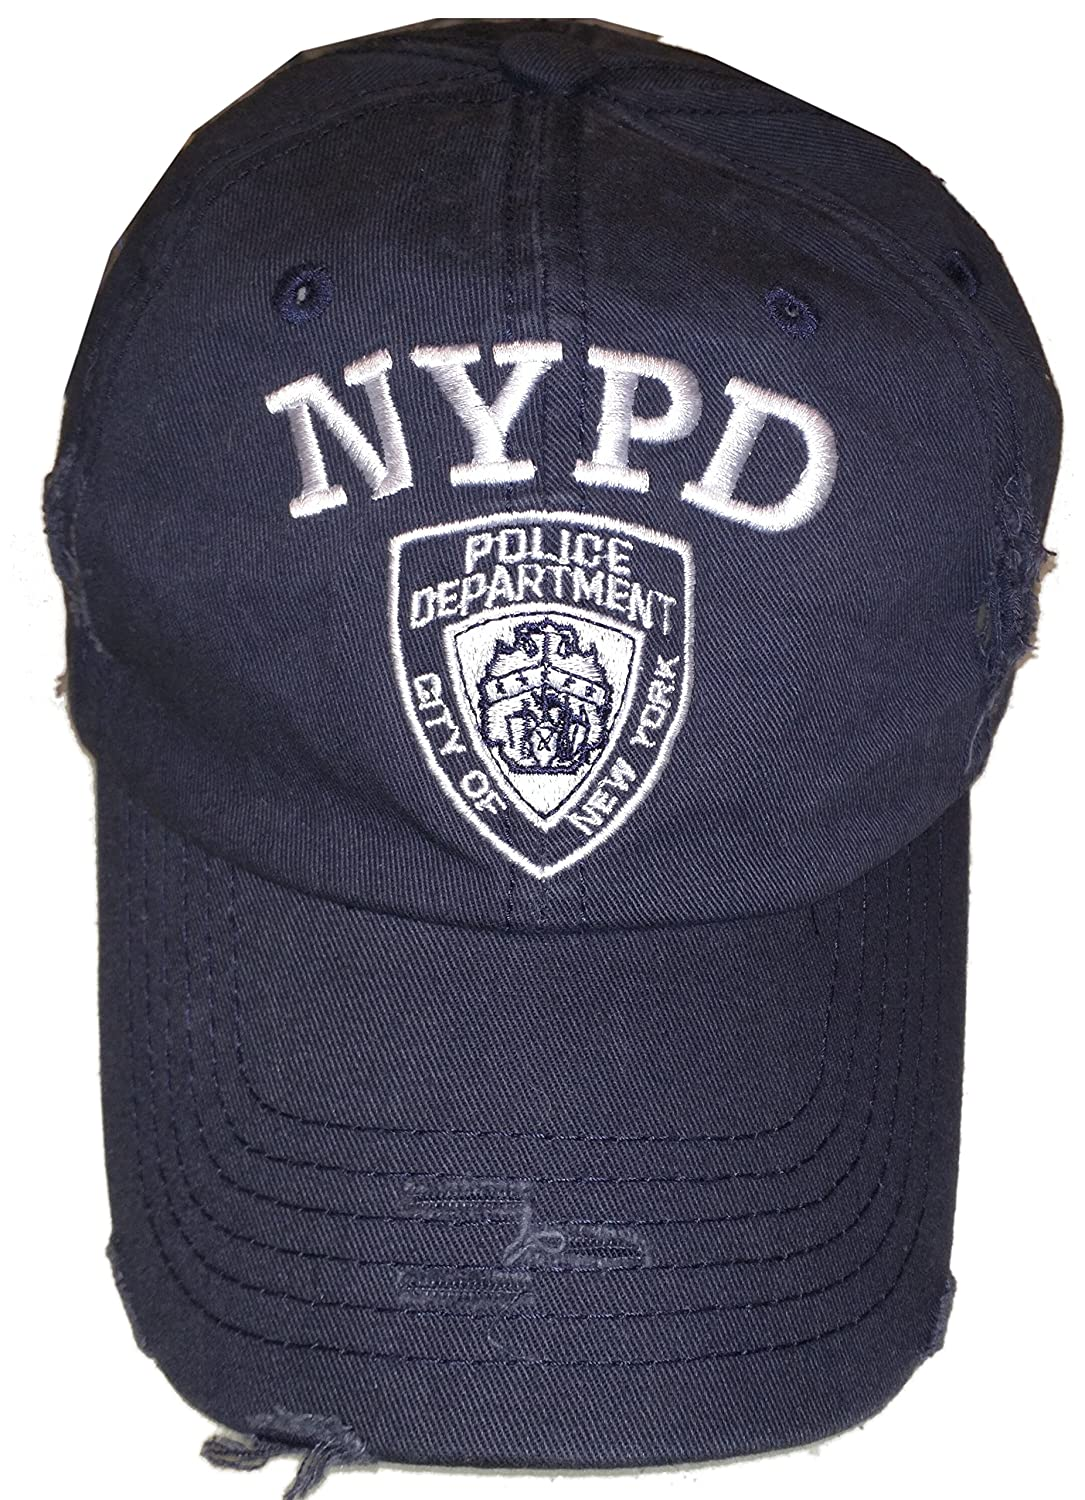 NYC FACTORY NYPD Baseball Hat New York Police Department Distressed White Logo Navy Blue